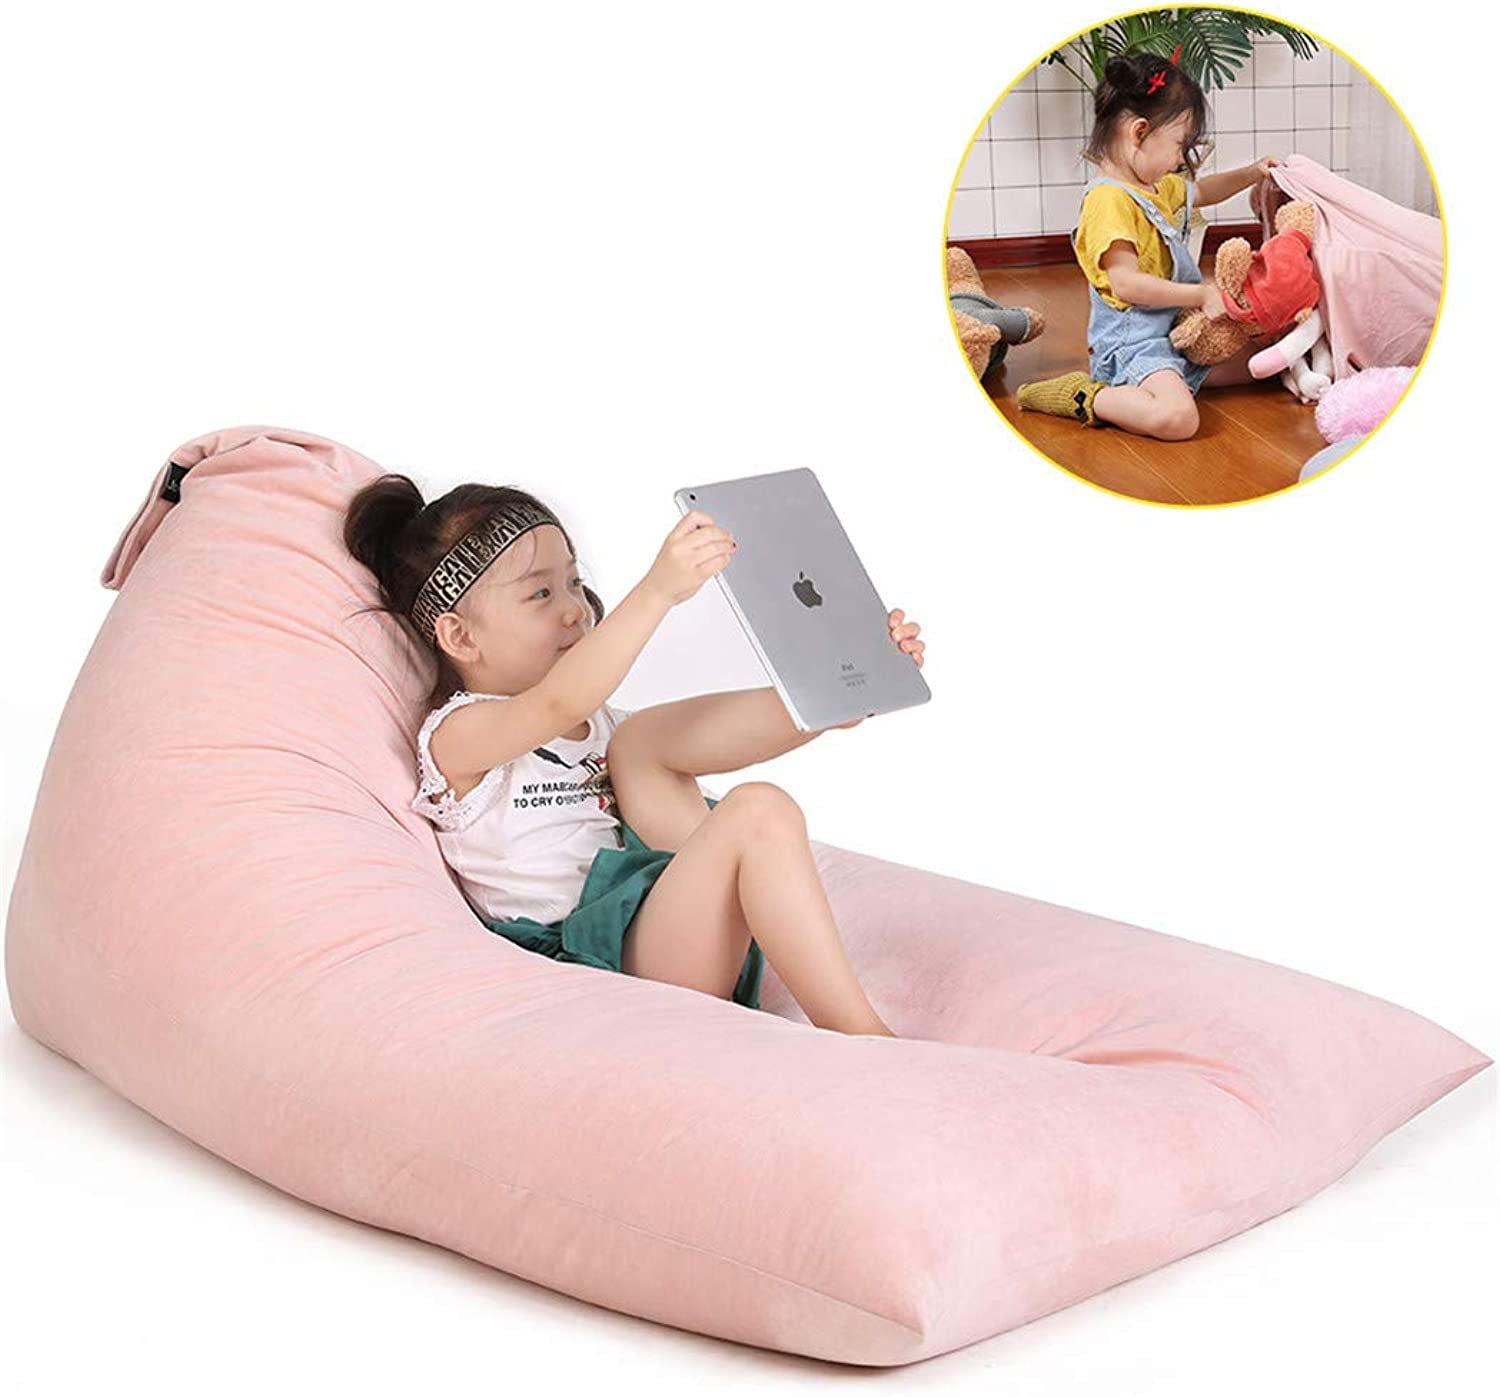 Stuffed Animal Storage Bean Bag Chair for Kids and Adults. Luxury Velvet Stuffie Seat - Cover ONLY(Sweet Pink 200L 52 Gal)